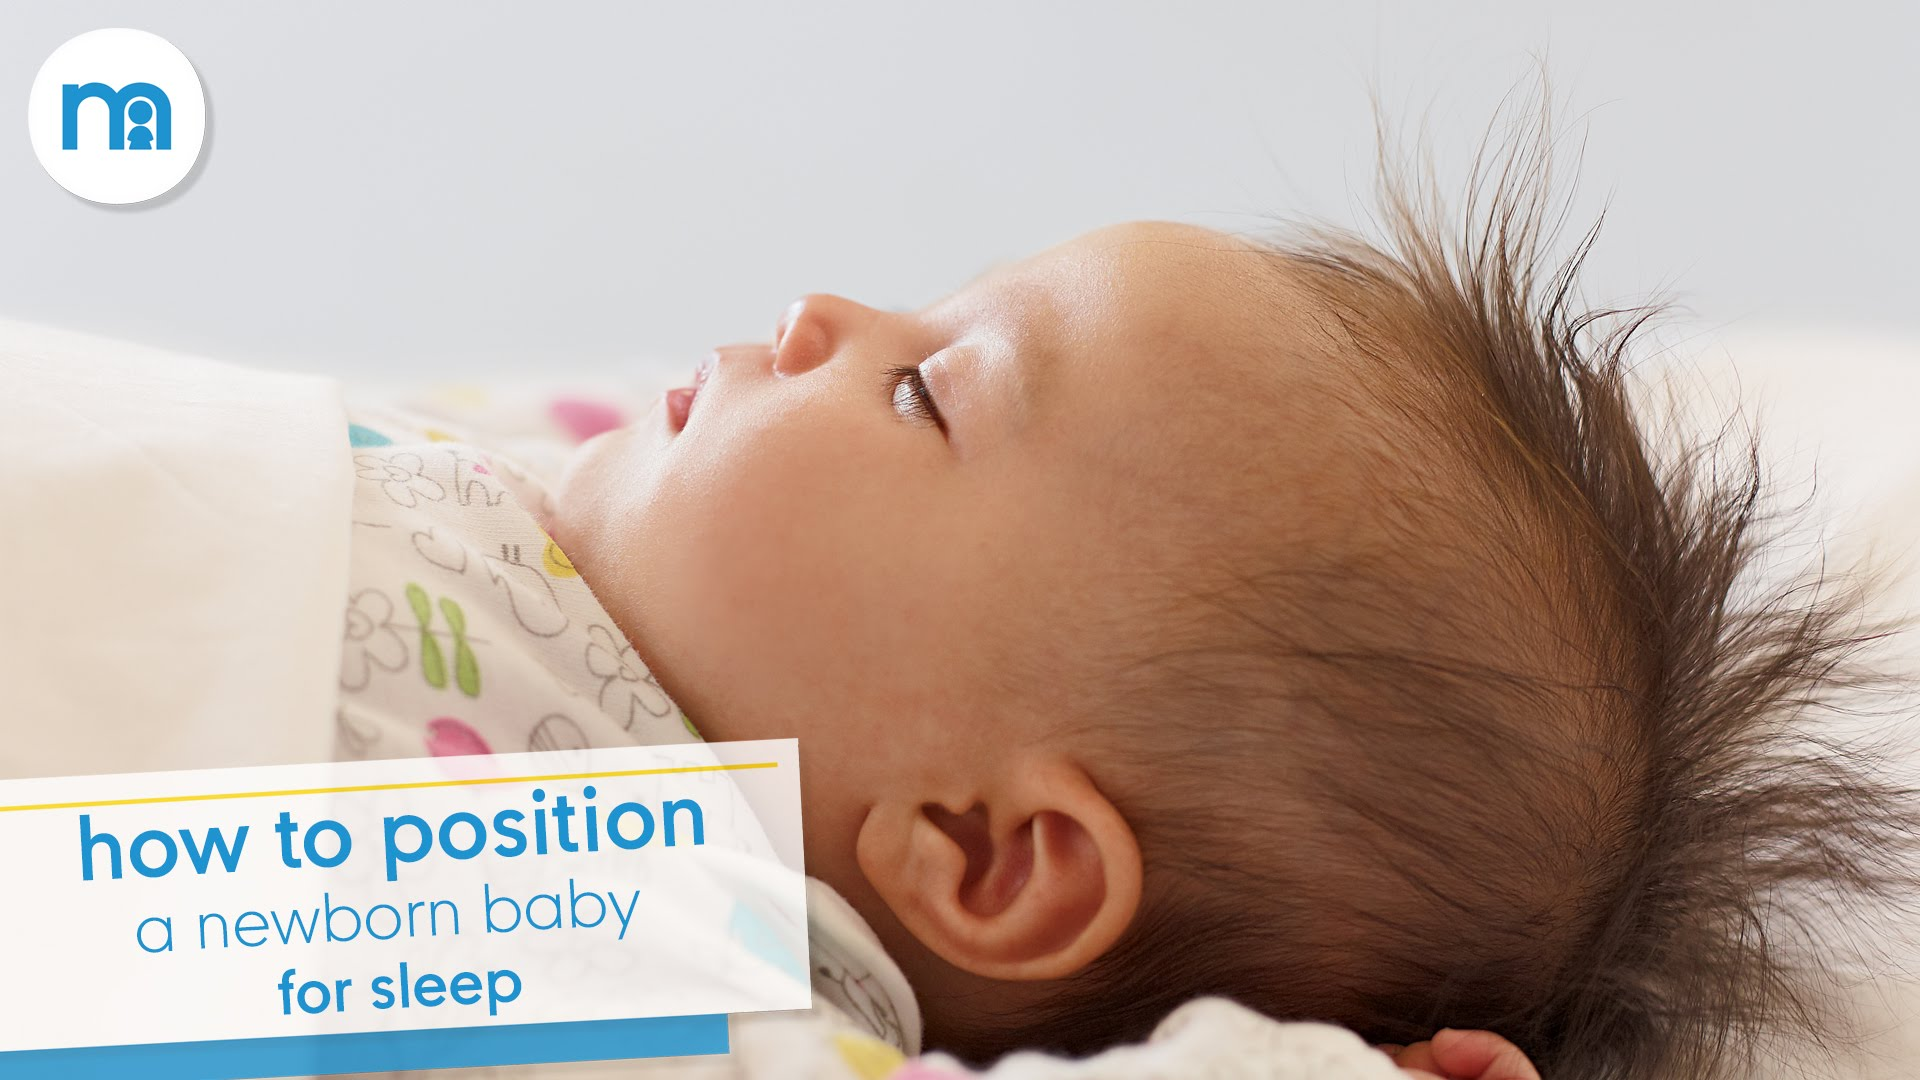 Study says many parents put infants to sleep in dangerous positions